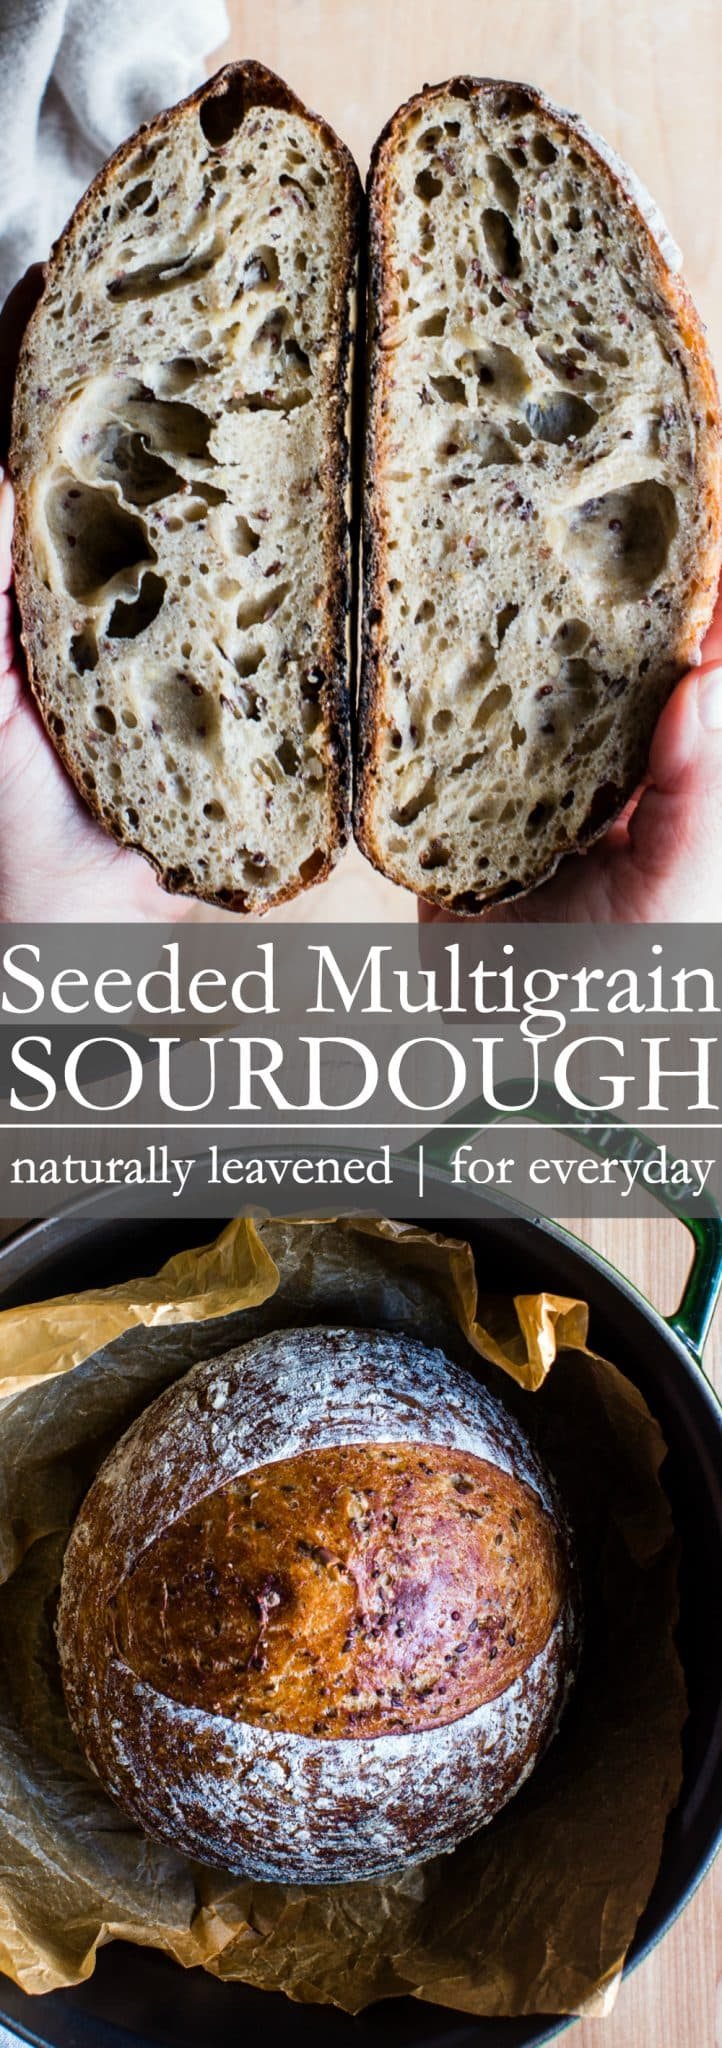 With a crunchy exterior and chewy interior, Seeded Multigrain Sourdough Bread is texture rich with an earthy blend of grains and seeds to make a crave-worthy loaf. #SourdoughBread #MultigrainBread #SourdoughMultigrain #NaturallyLeavenedBread #VeganBread